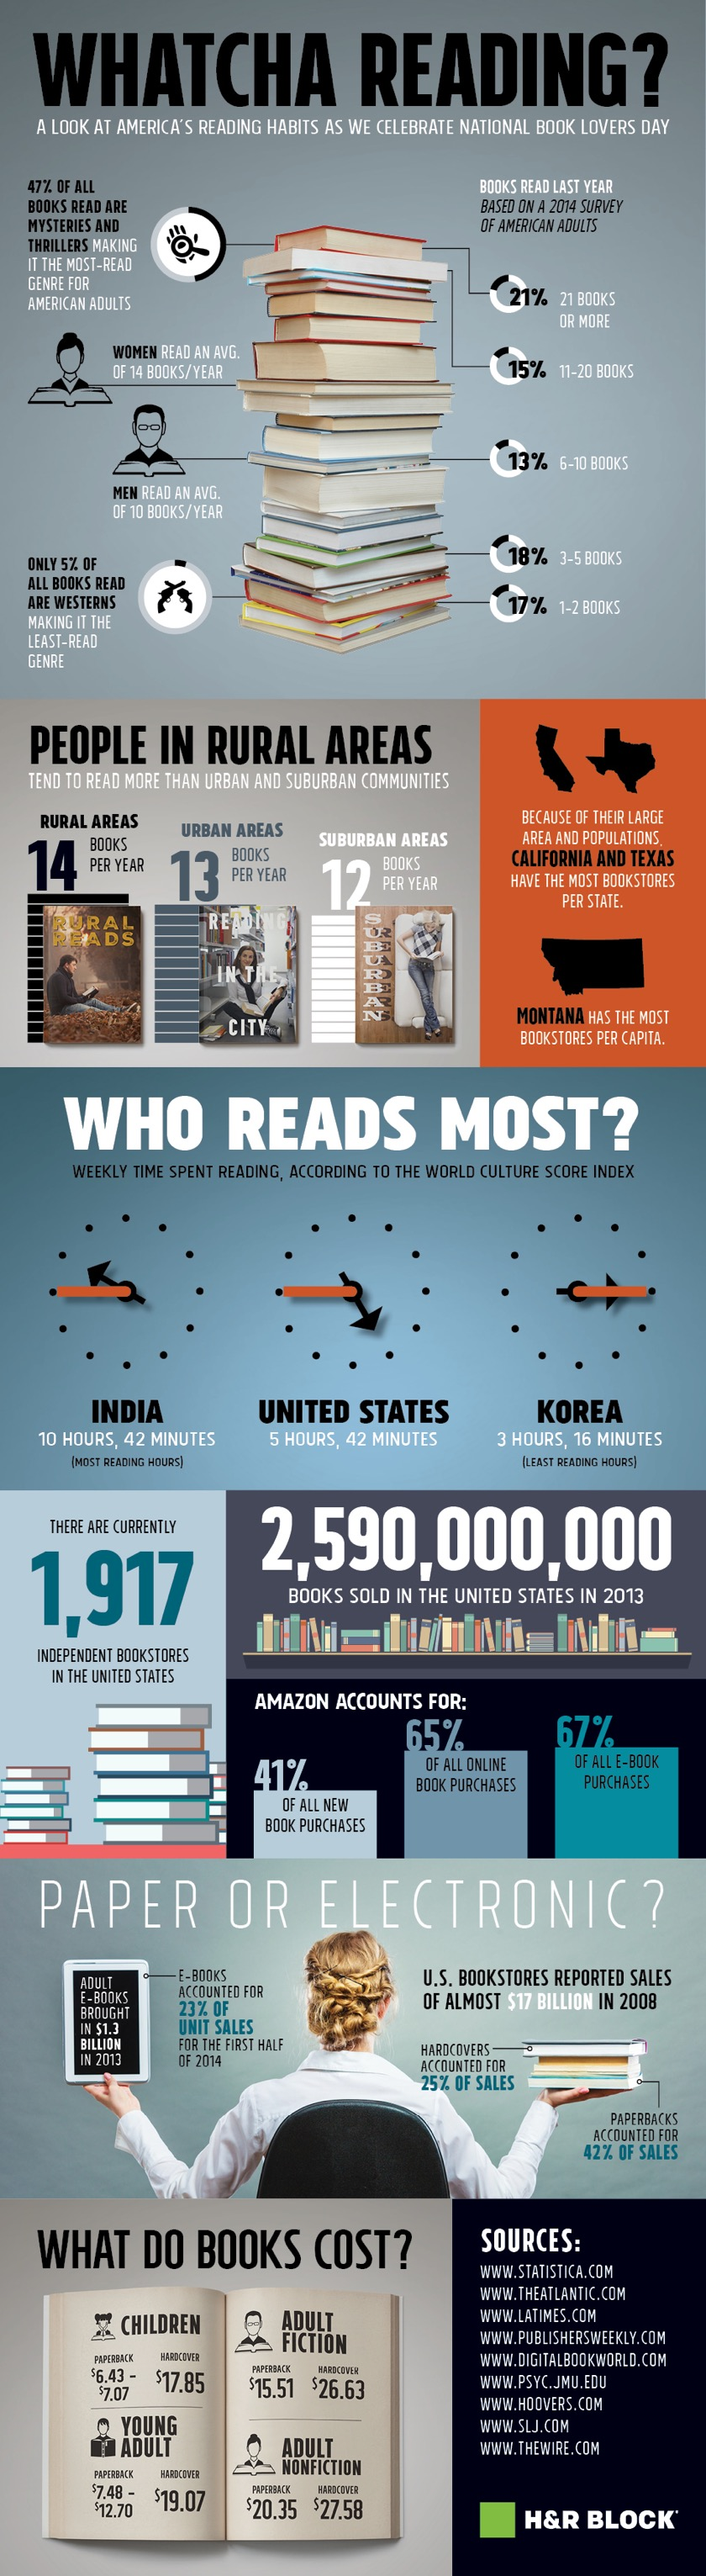 Reading-habits-in-the-U.S.-infographic